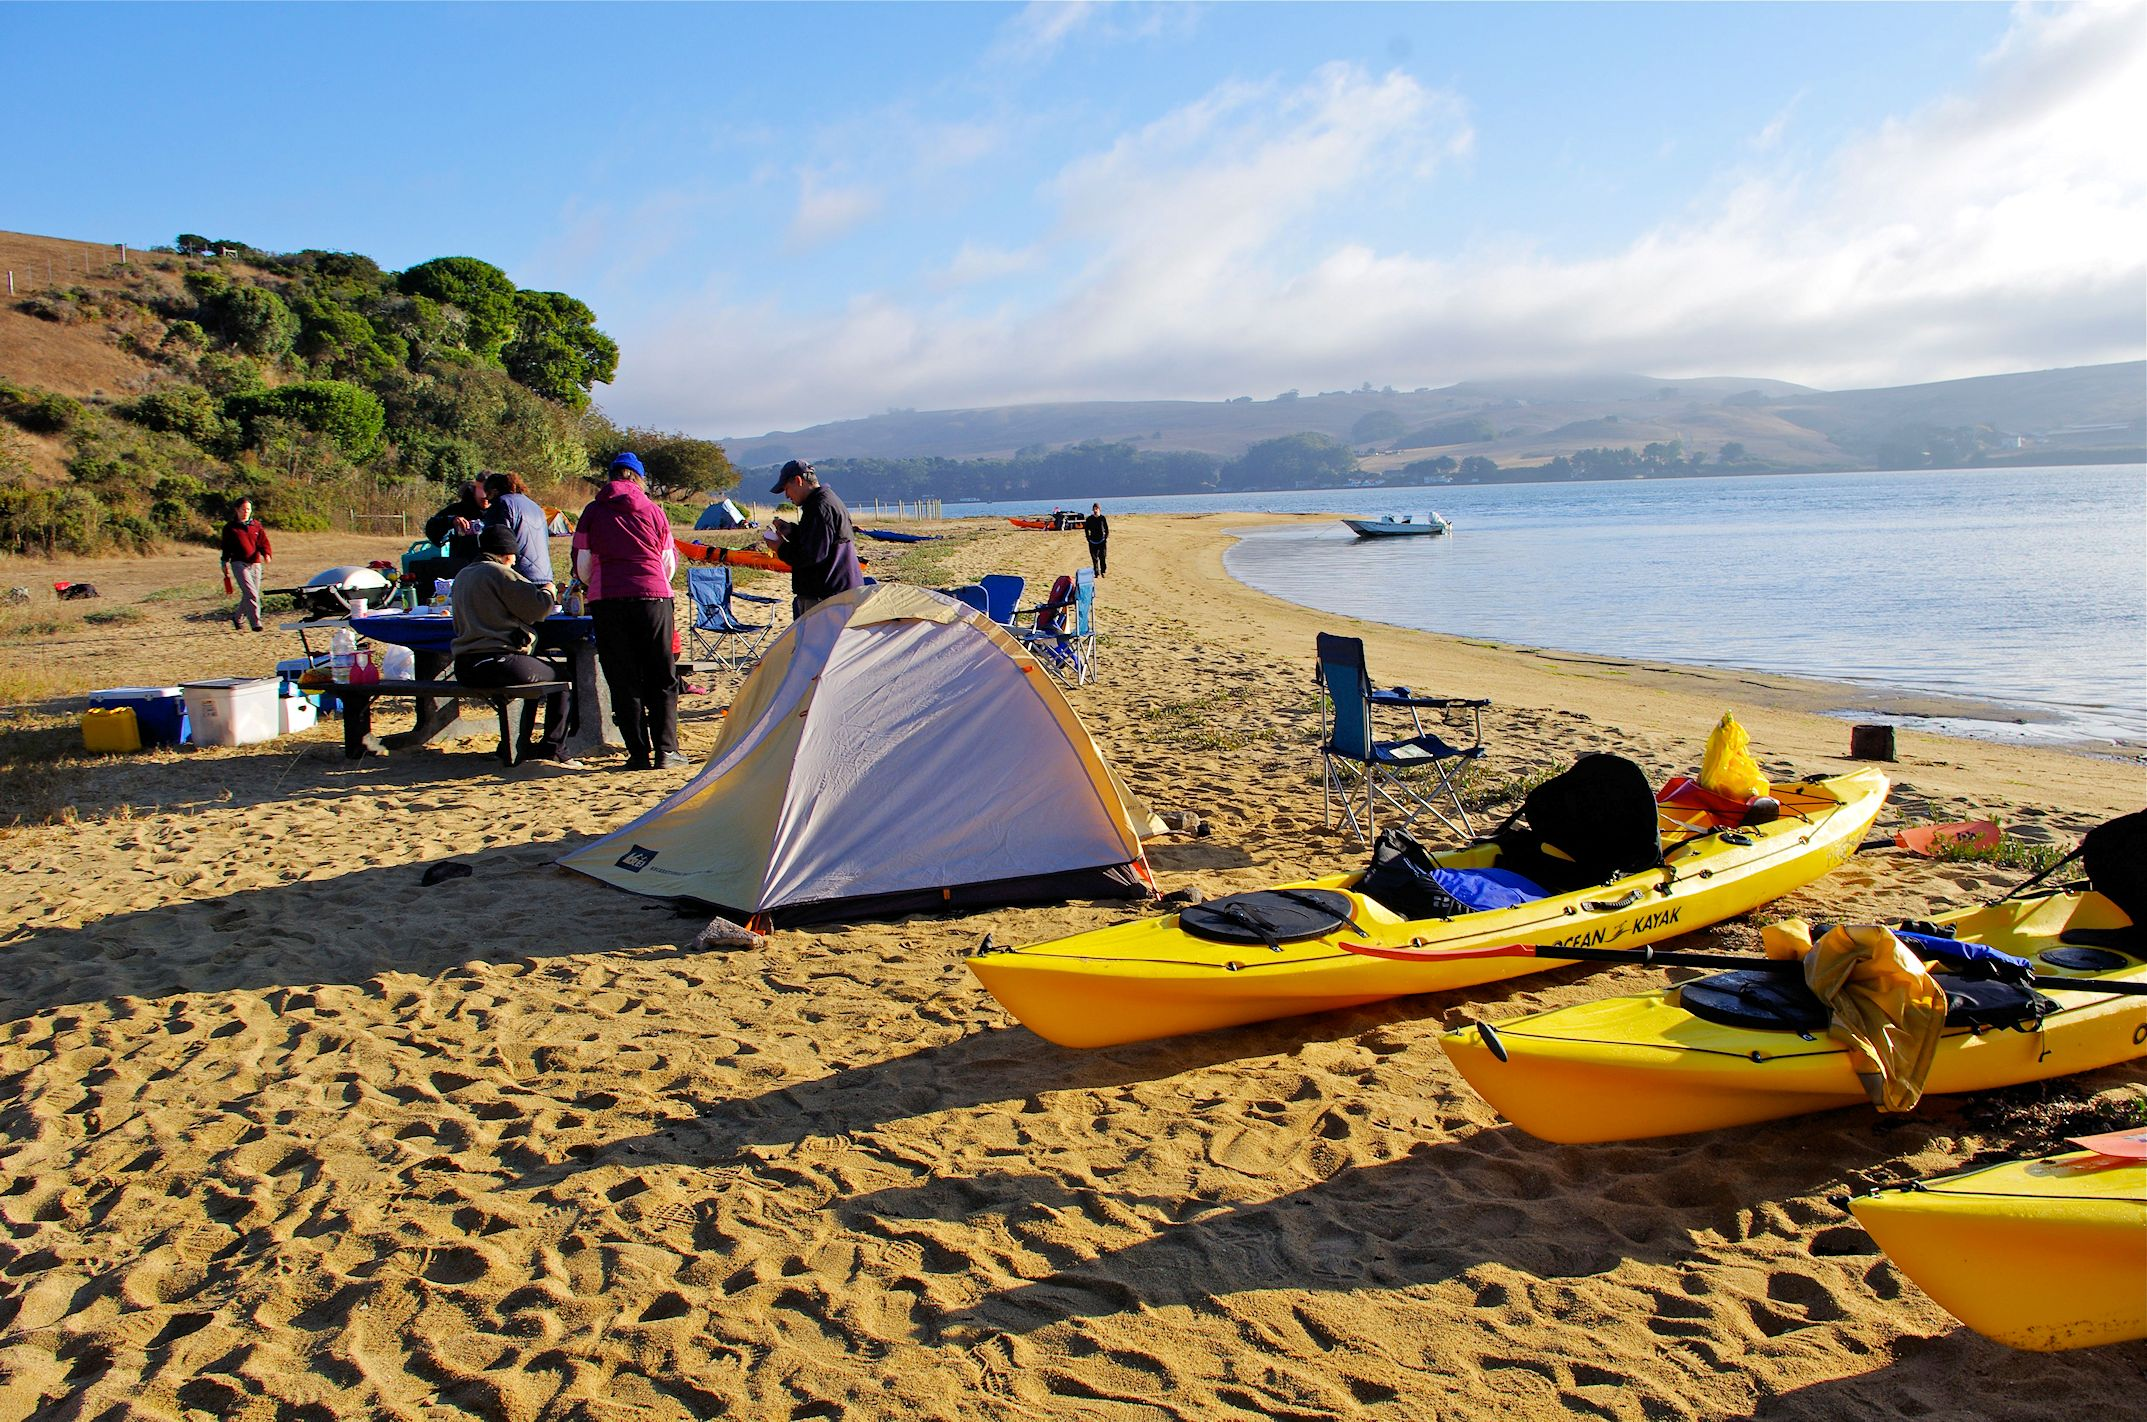 singles over 50 in camp point Surfing holidays for singles over 30  find the most popular surf camp for singles over 30 here: 1 surfing holiday – superior surf camp package in portugal.